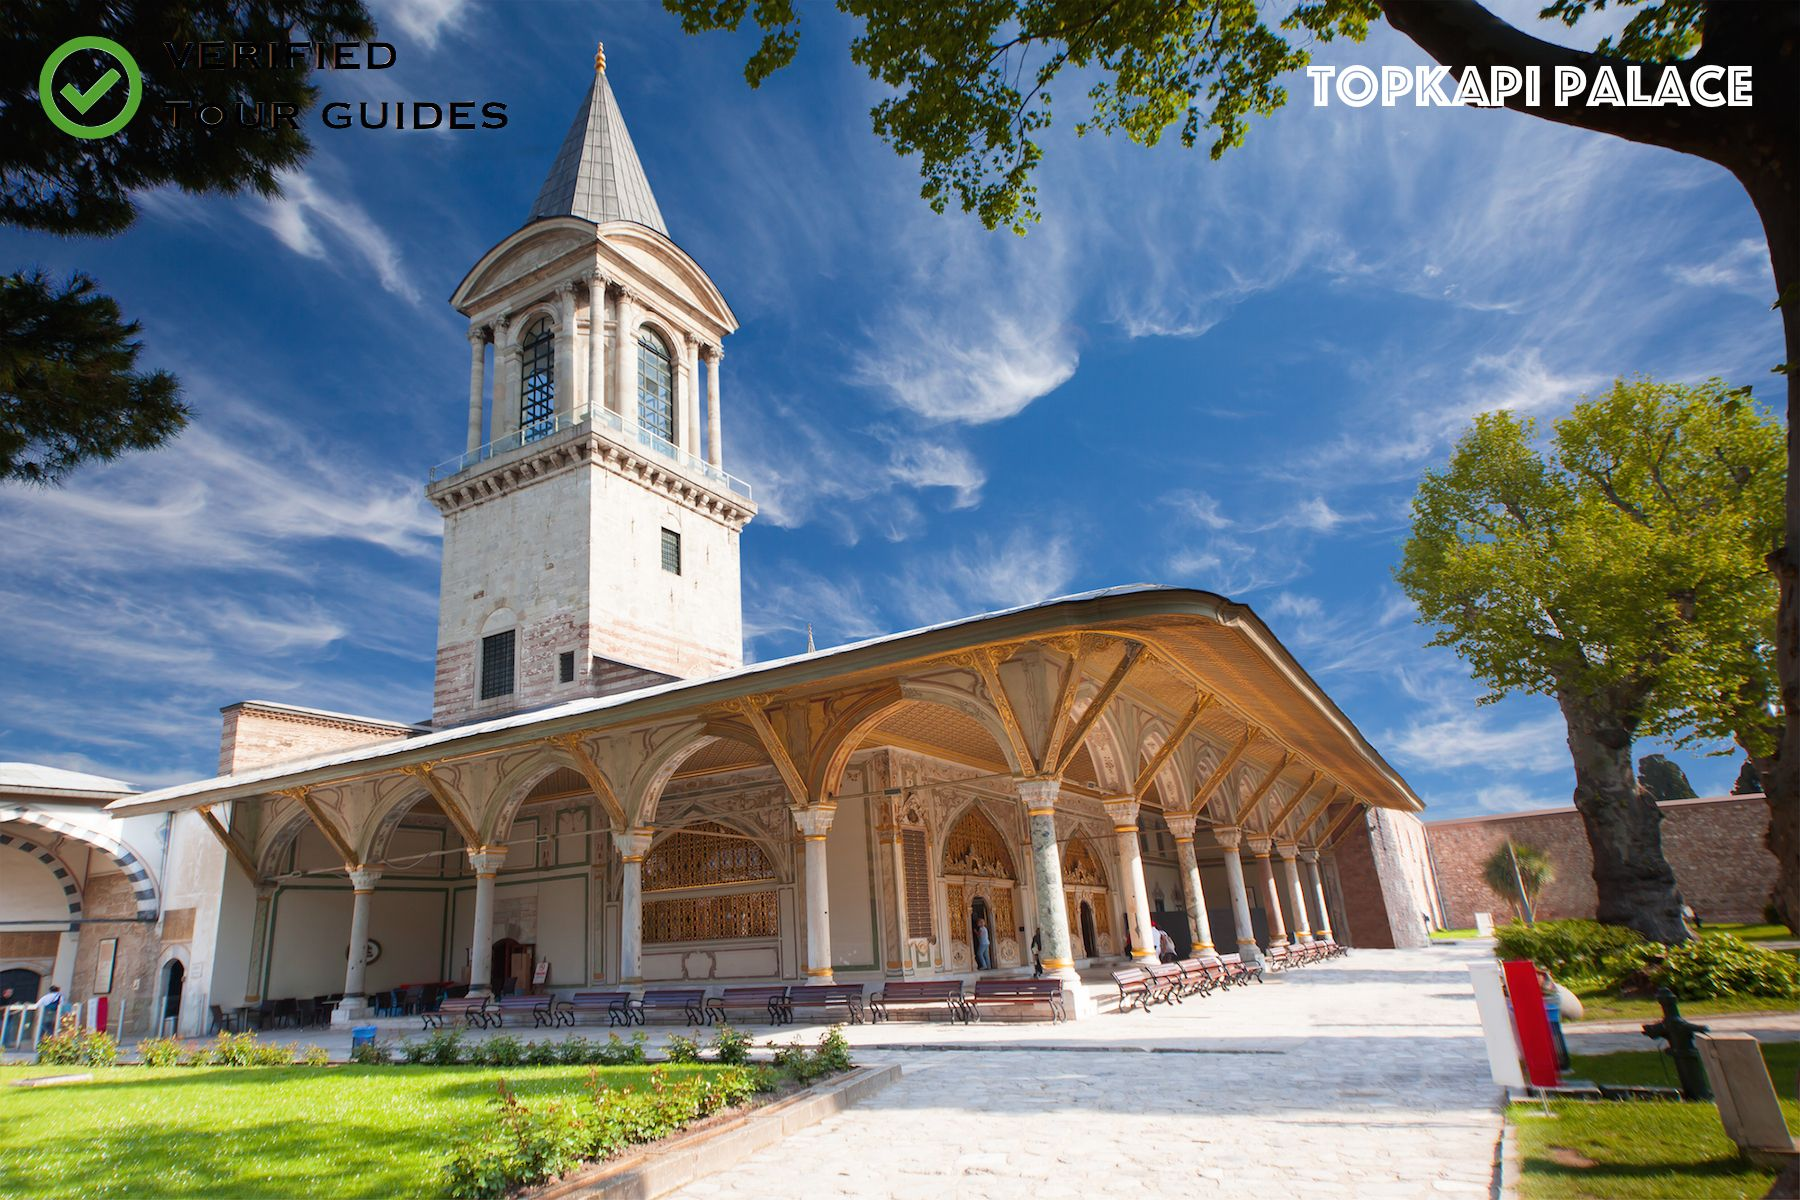 Topkapi Palace In Istanbul Turkey It Has Been The Home To Ottoman